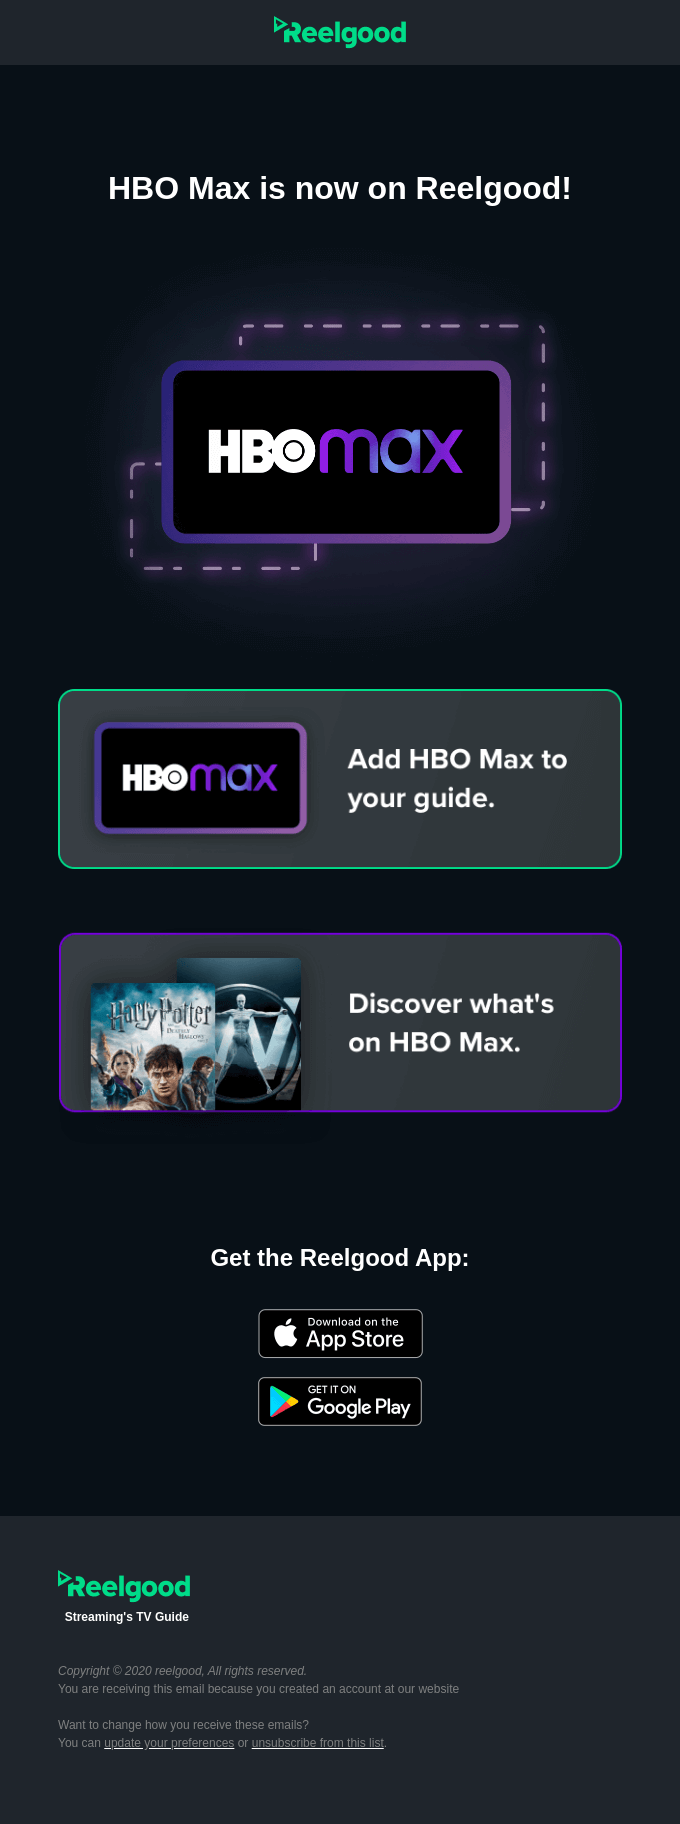 hbo-max-is-here